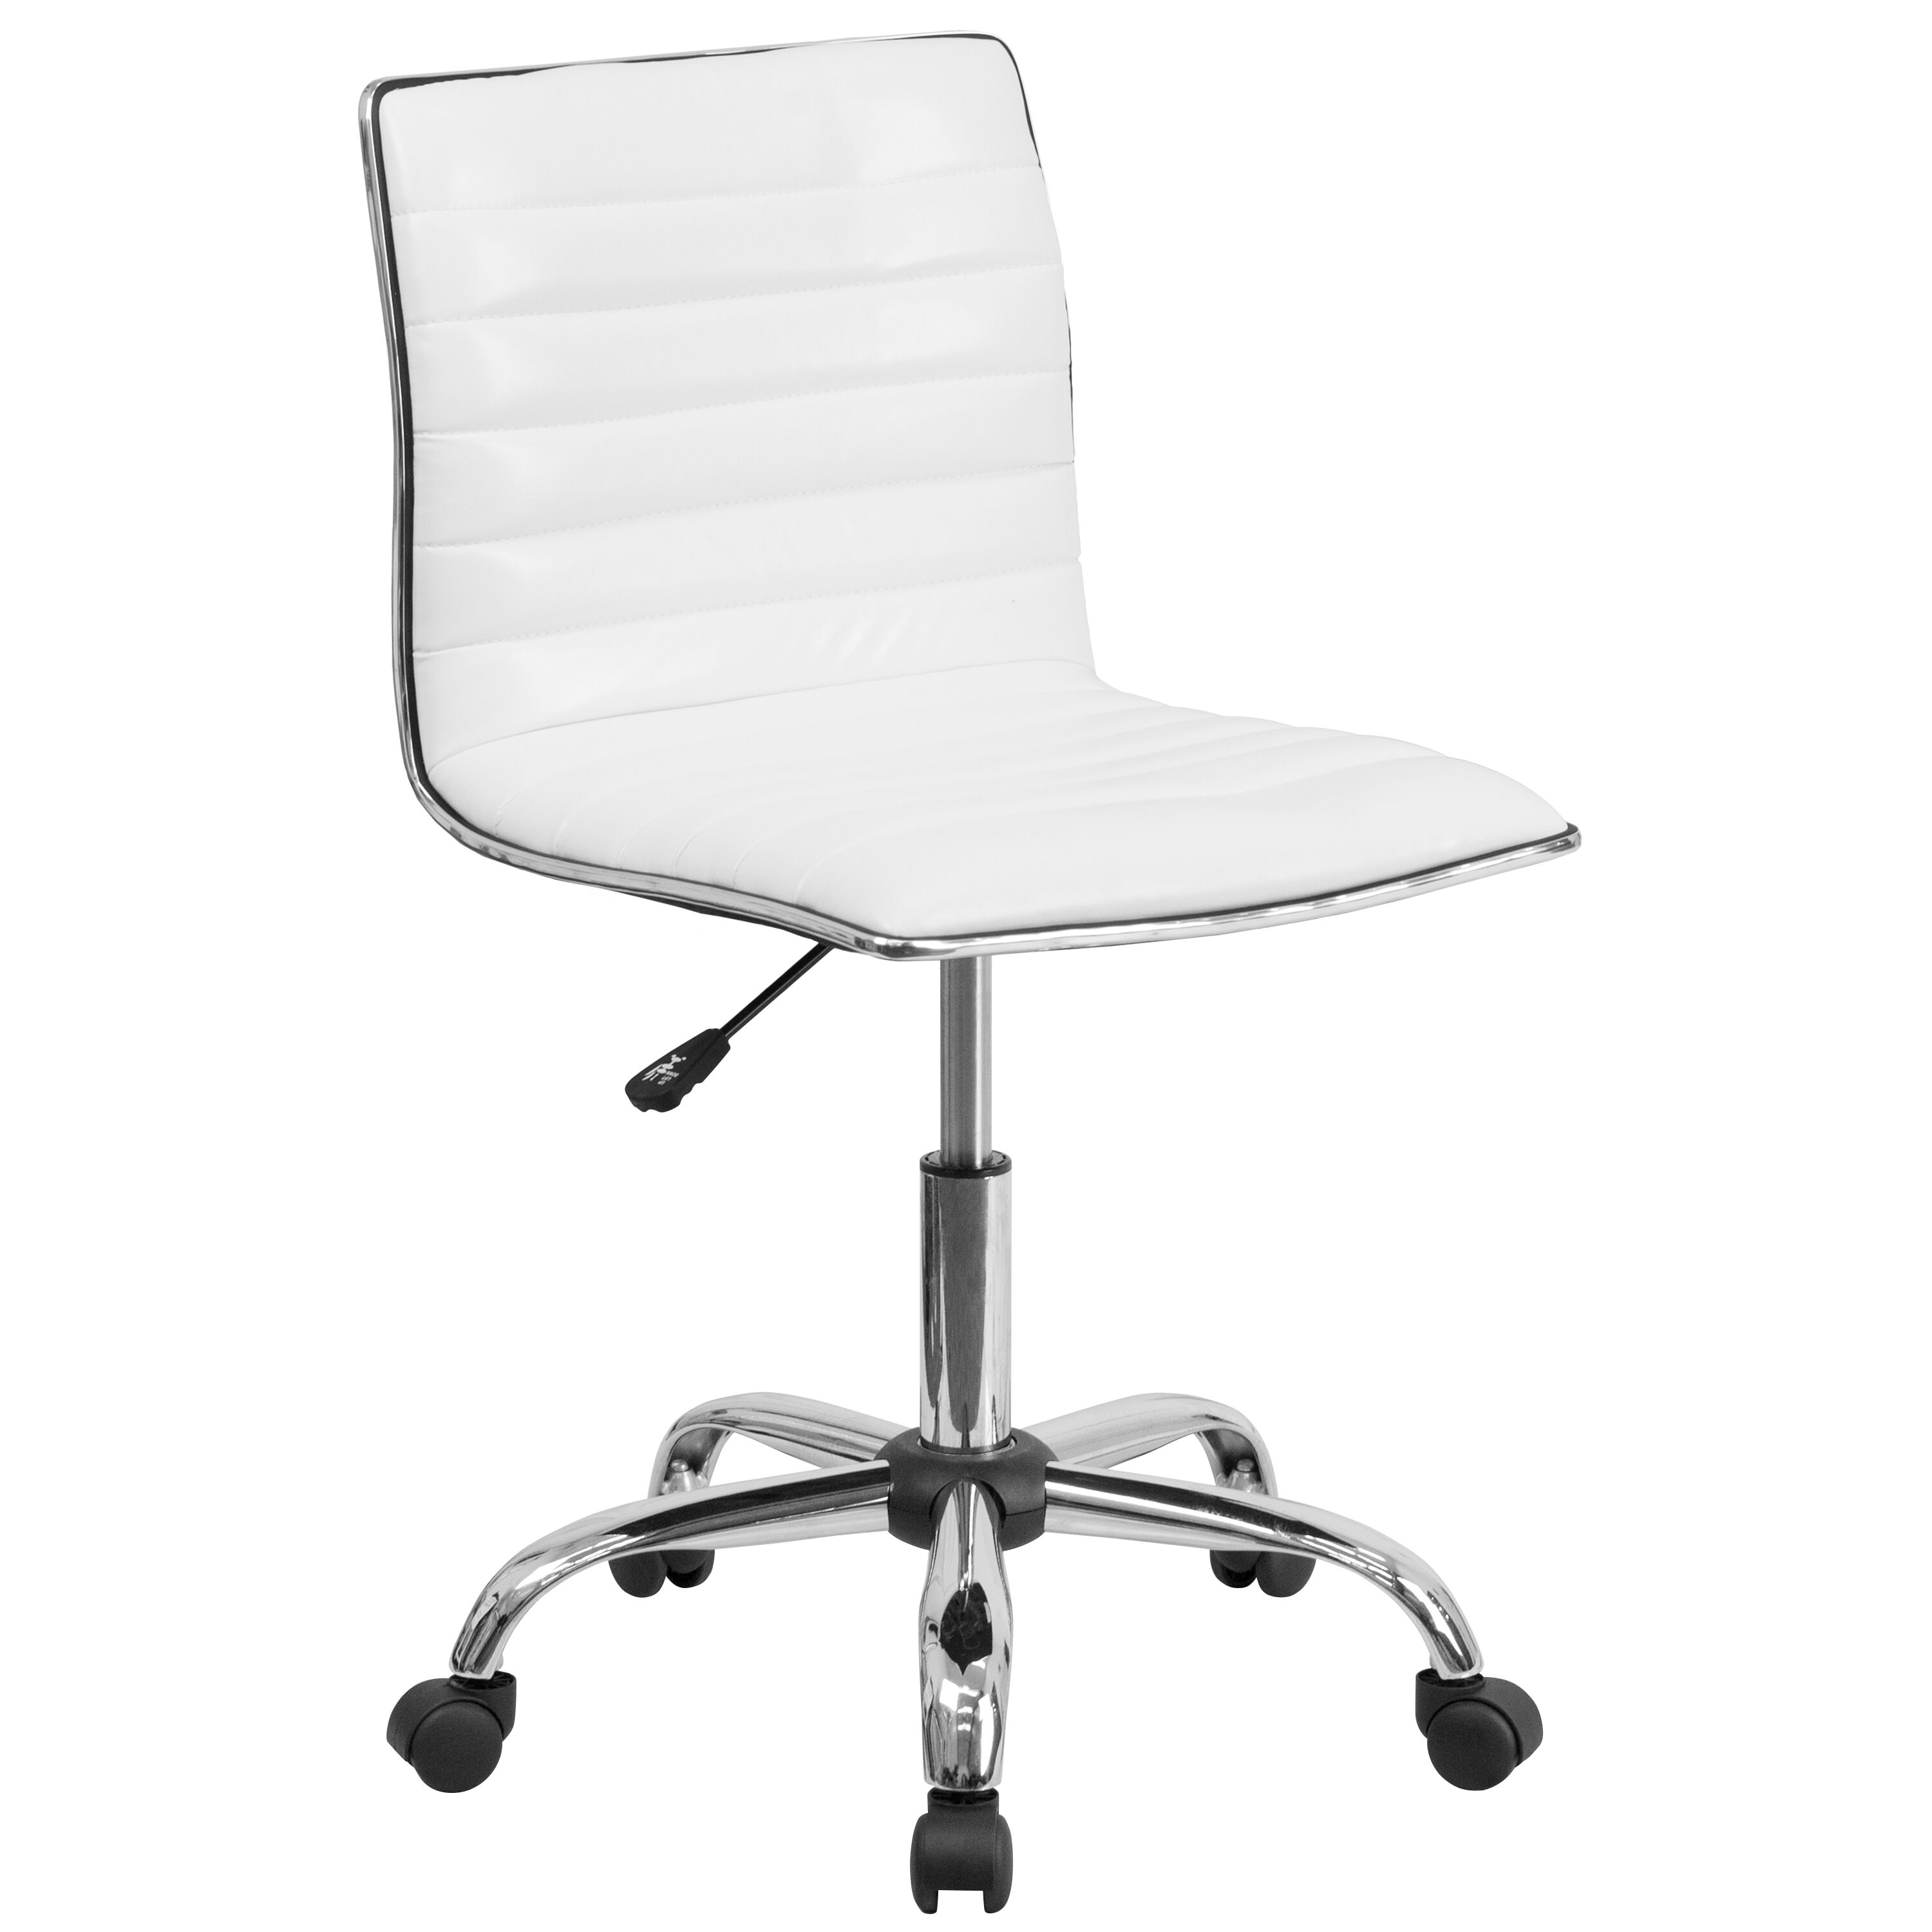 armless chair office sheboygan company white low back task ds 512b wh gg bizchair com our designer ribbed swivel is on sale now